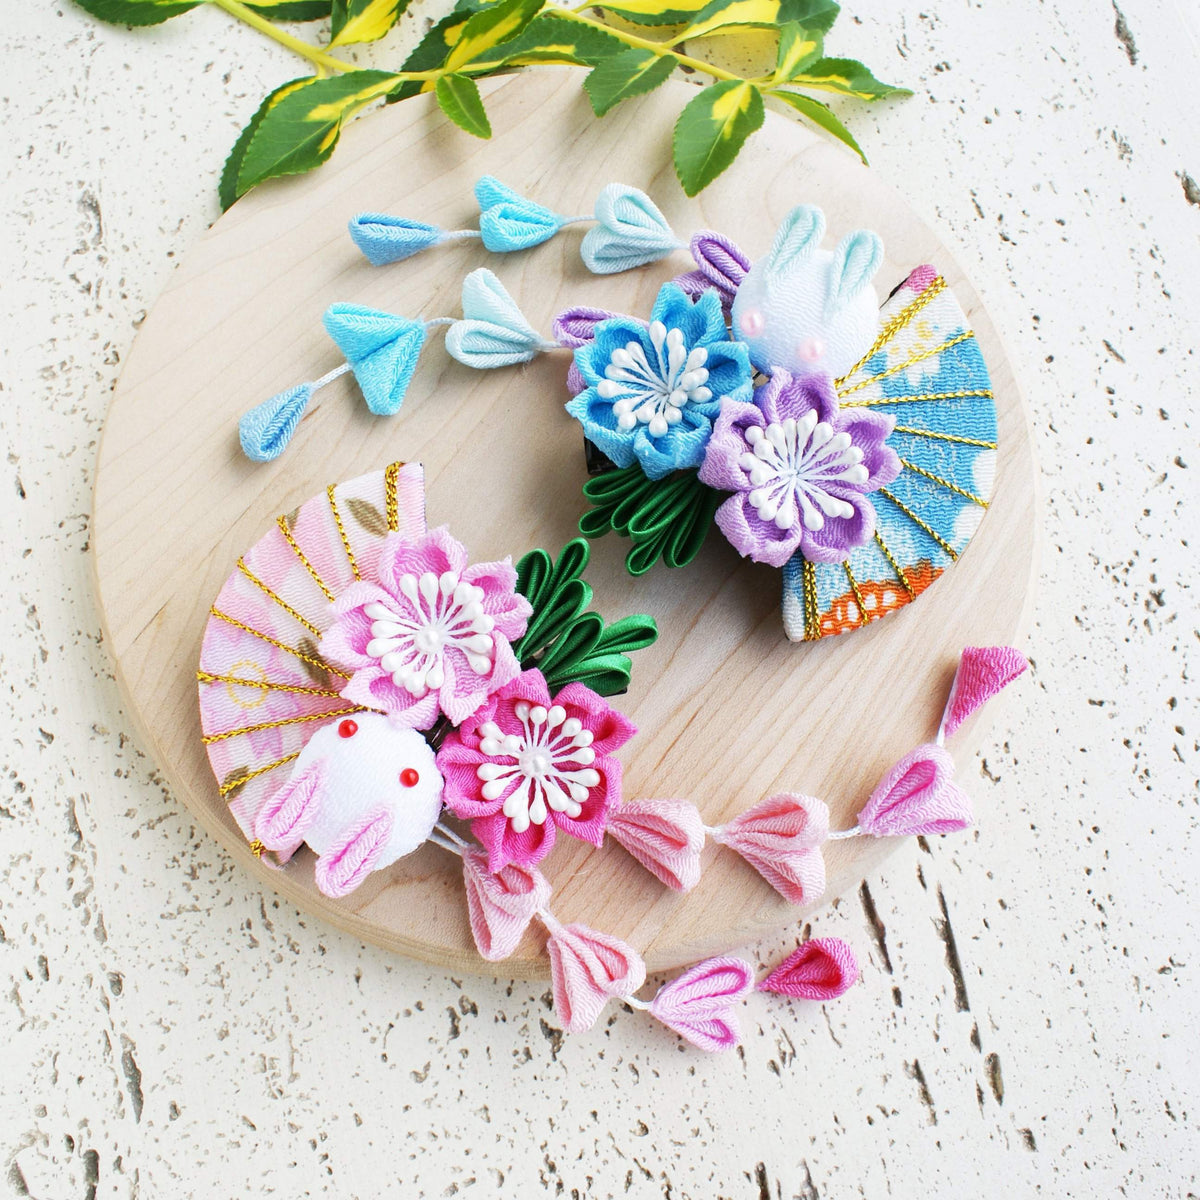 Kanzashi Rabbit, Fan, and Cherry Blossoms Dangle Hair Clip for Japanese Kimono